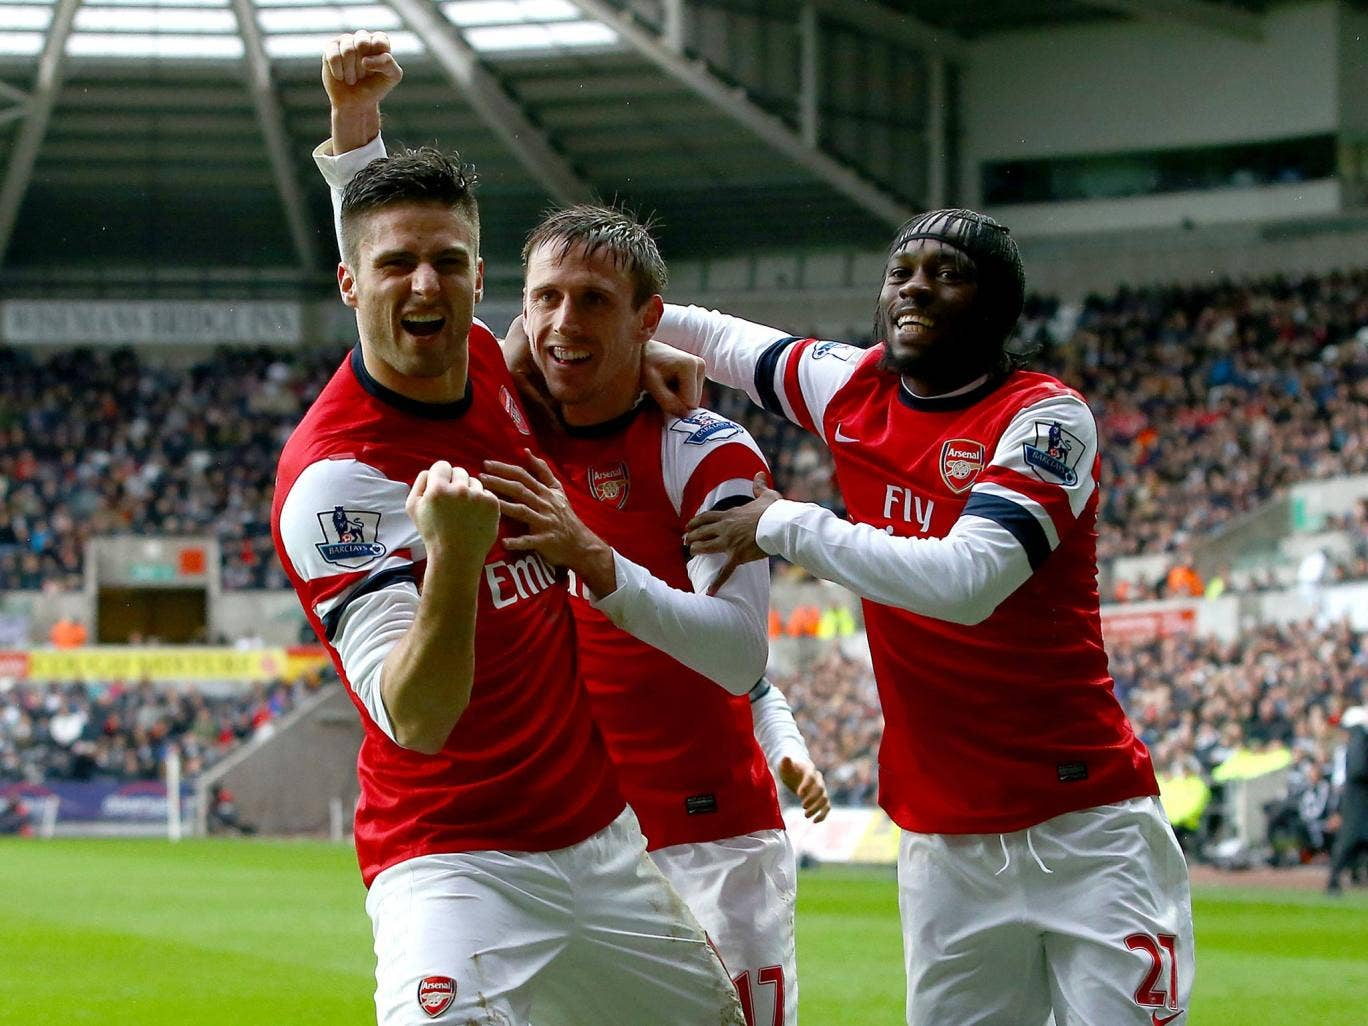 Nacho Monreal of Arsenal (C) celebrates his goal against Swansea with team mates Olivier Giroud(L) and Gervinho